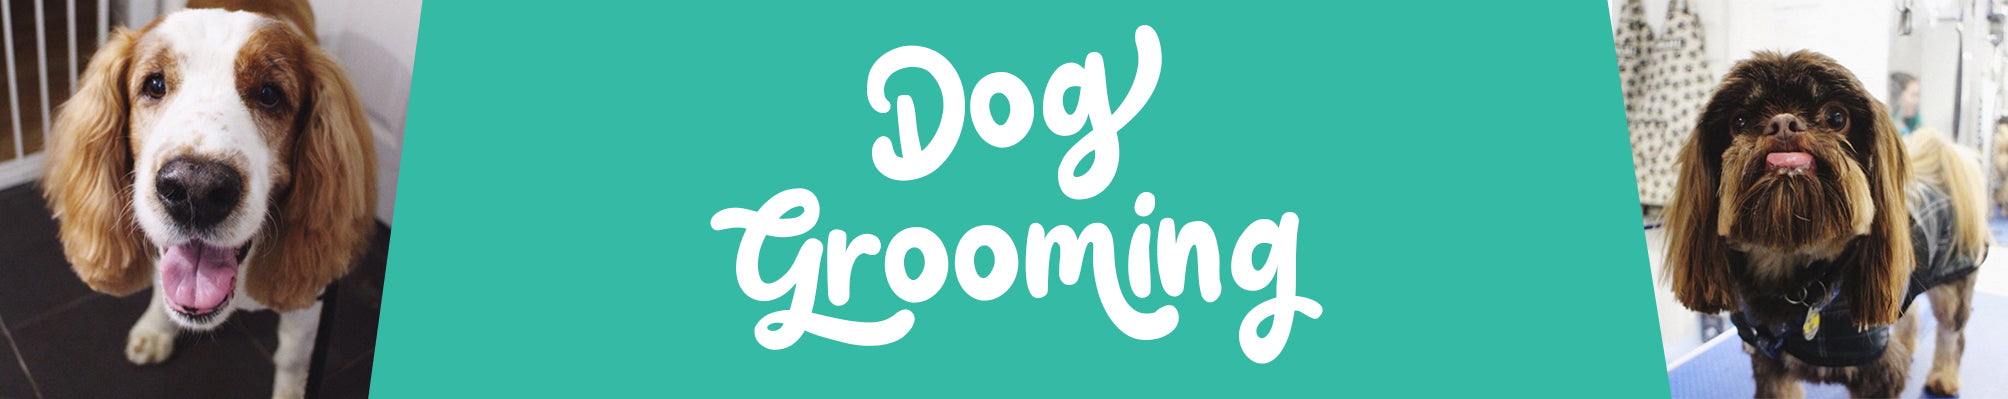 Dog Grooming Cumbernauld | Book An Appointment | Underdog Pets